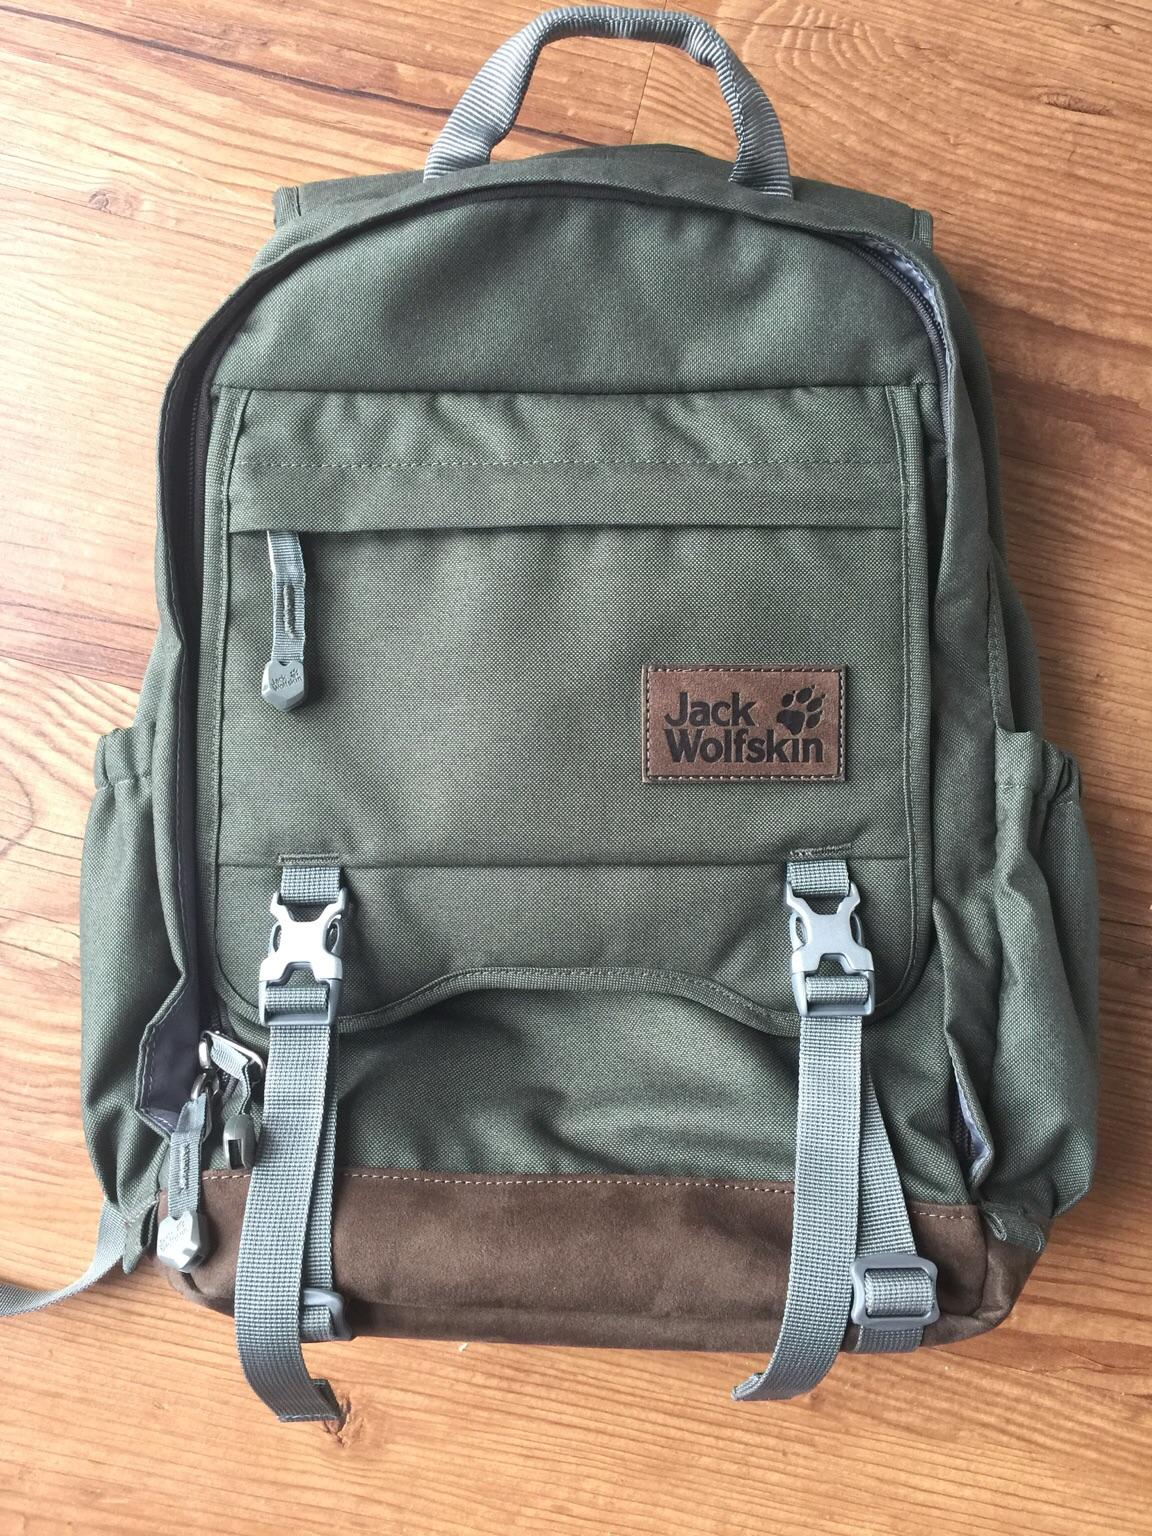 Jack Wolfskin Covent Garden Daypack | Bags, Shoulder bag